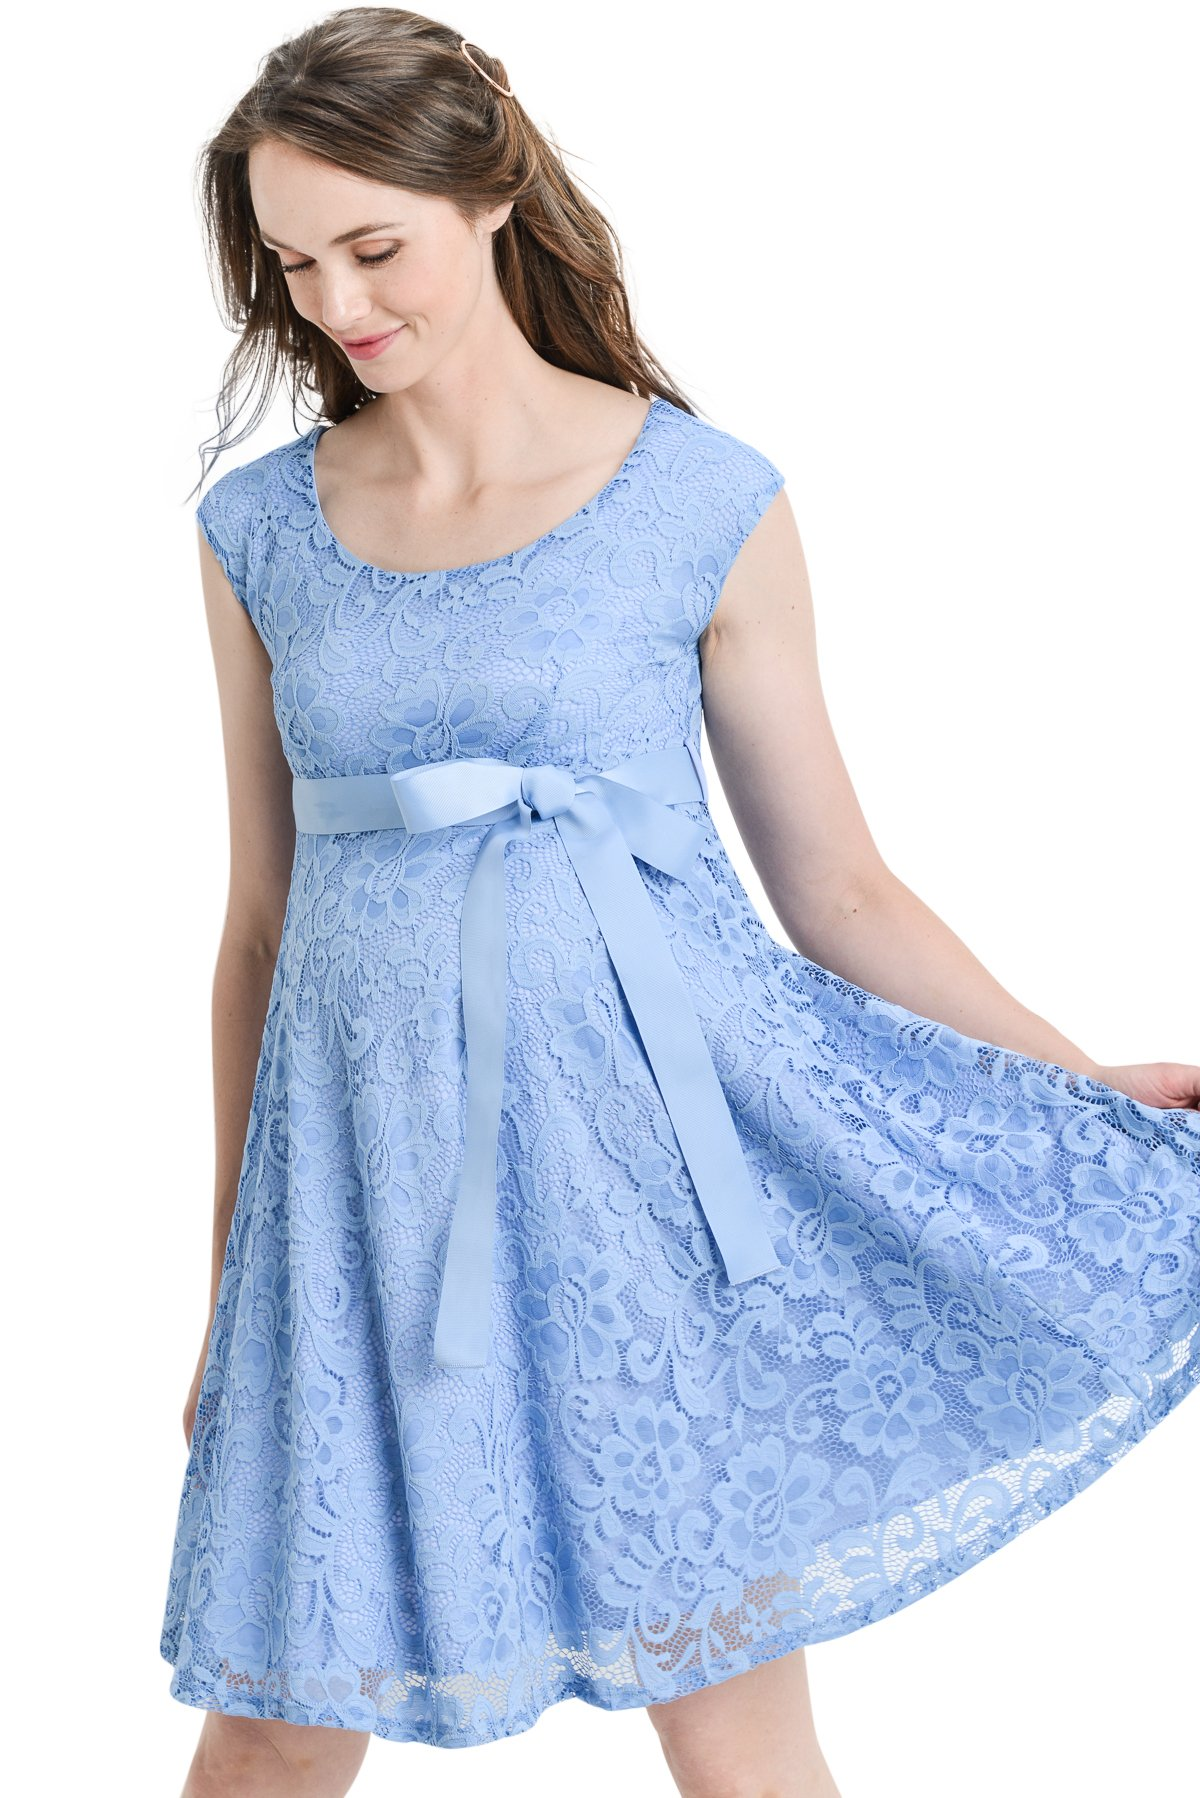 Hello MIZ Floral Lace Baby Shower Party Cocktail Dress with Satin Waist Maternity Dress (Small, Sky Blue)